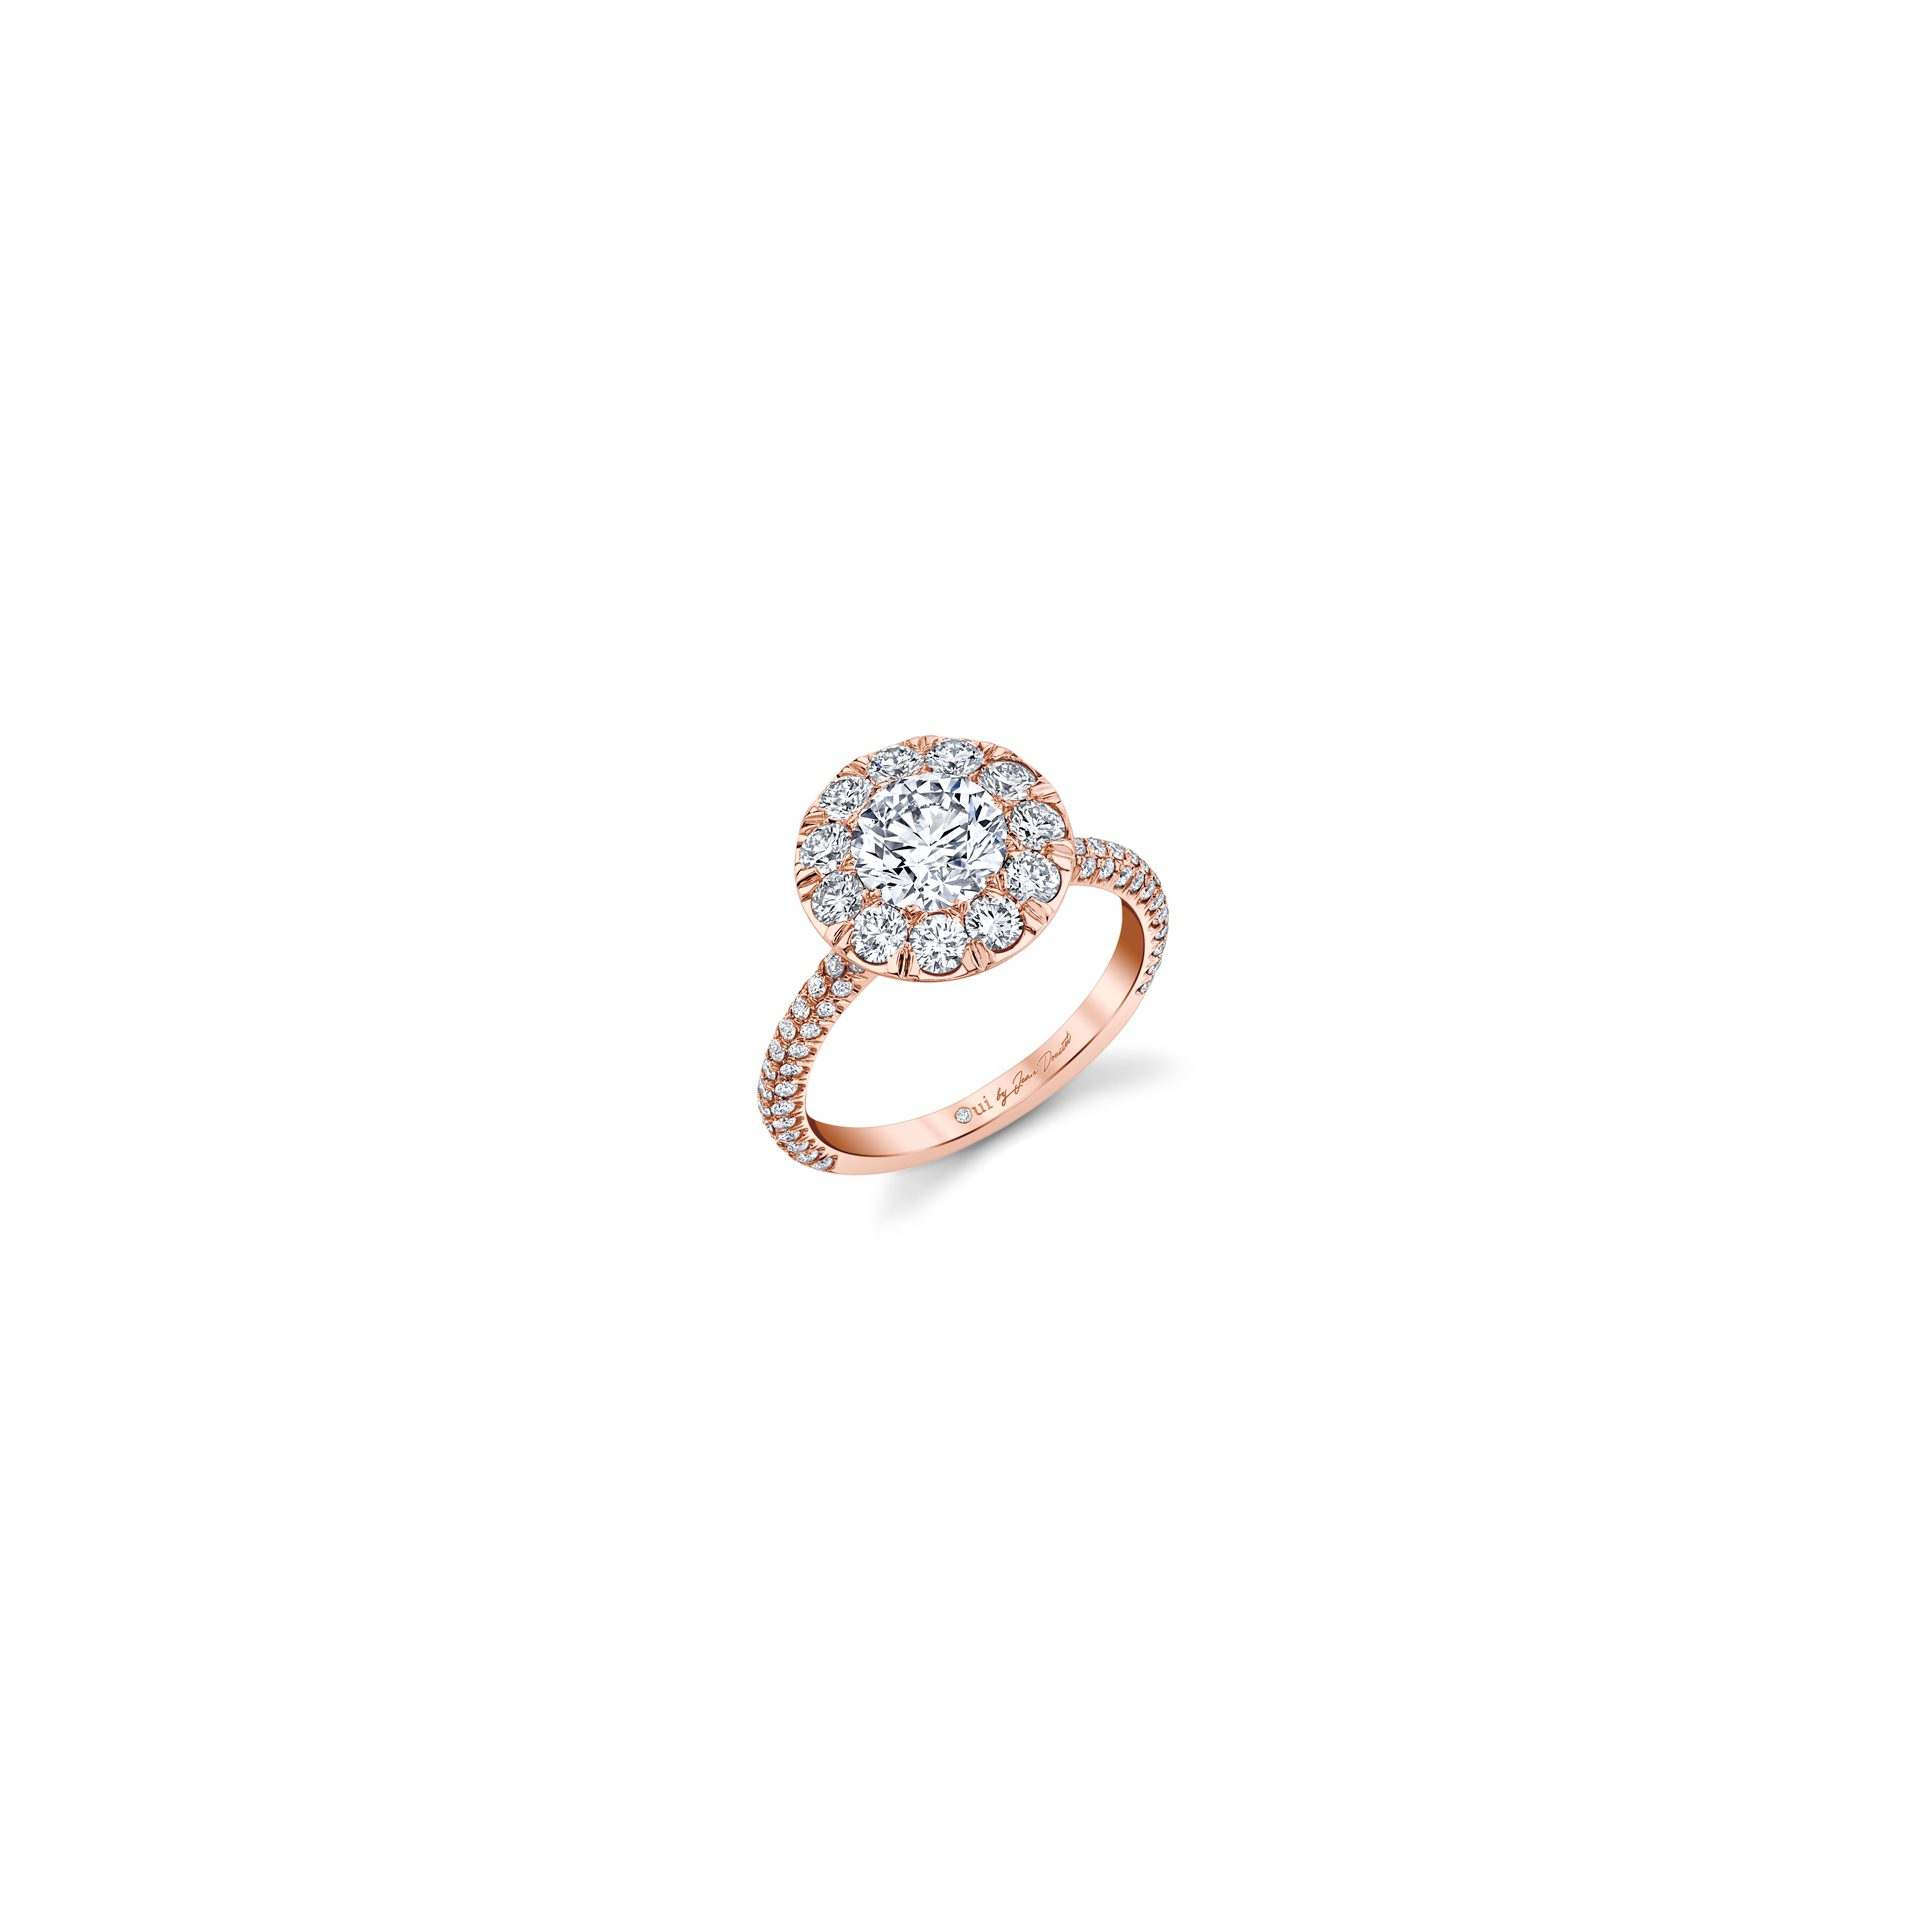 Jacqueline Round Brilliant Seamless Solitaire™ Engagement Ring with diamond pavé in 18k Rose Gold Front View by Oui by Jean Dousset